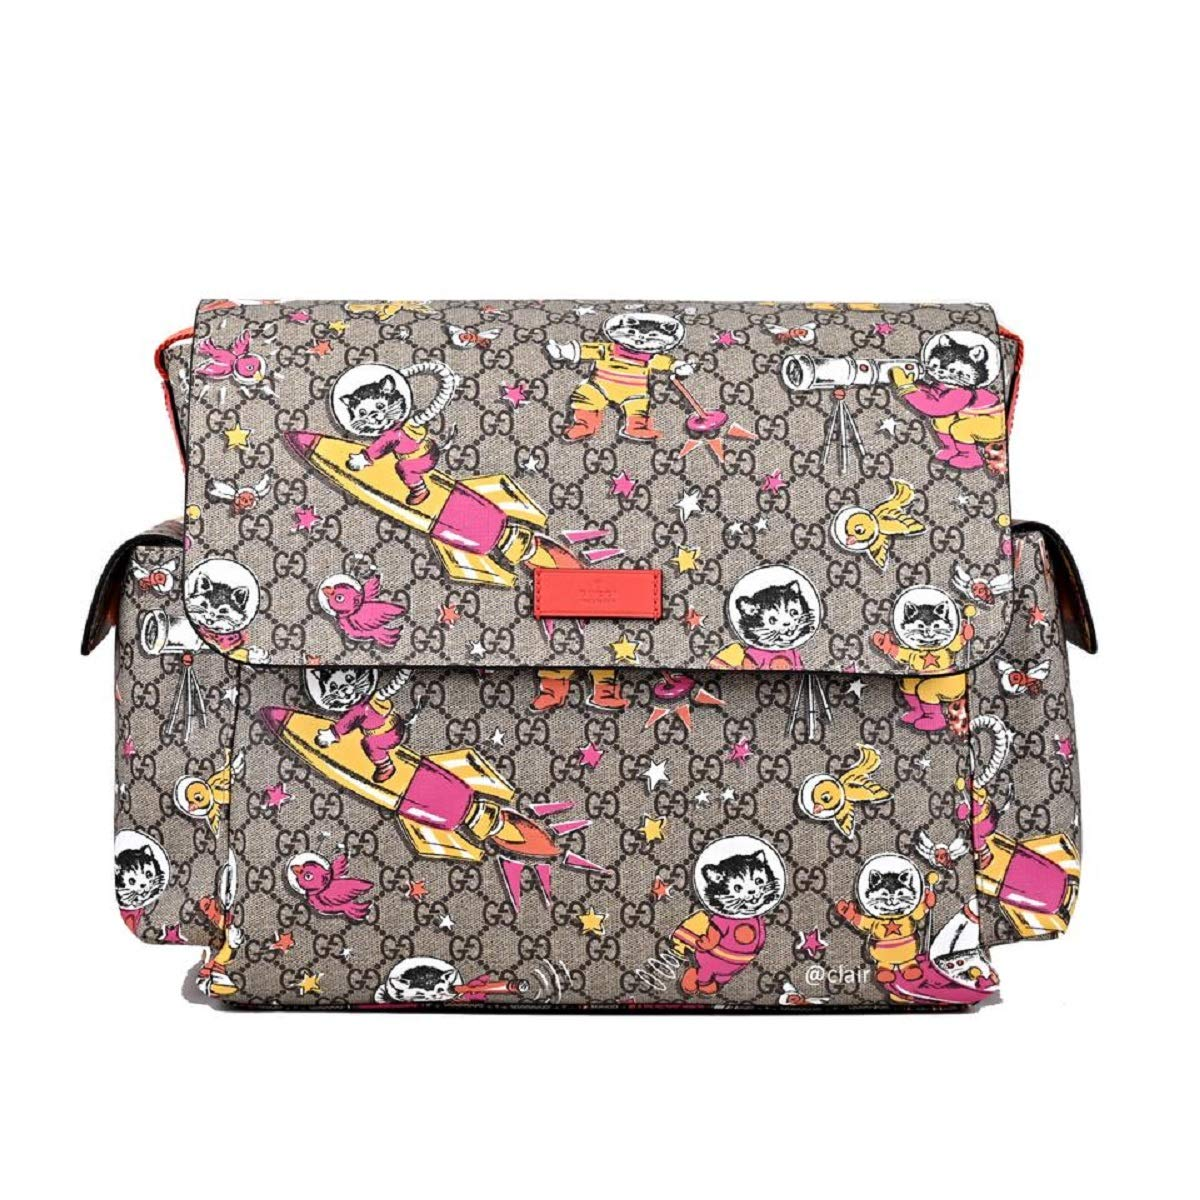 d20ad2d48a01 Amazon.com: Gucci Space Cats Cat GG Canvas Diaper Bag Baby Beige Multicolor  Orange Italy New: Shoes